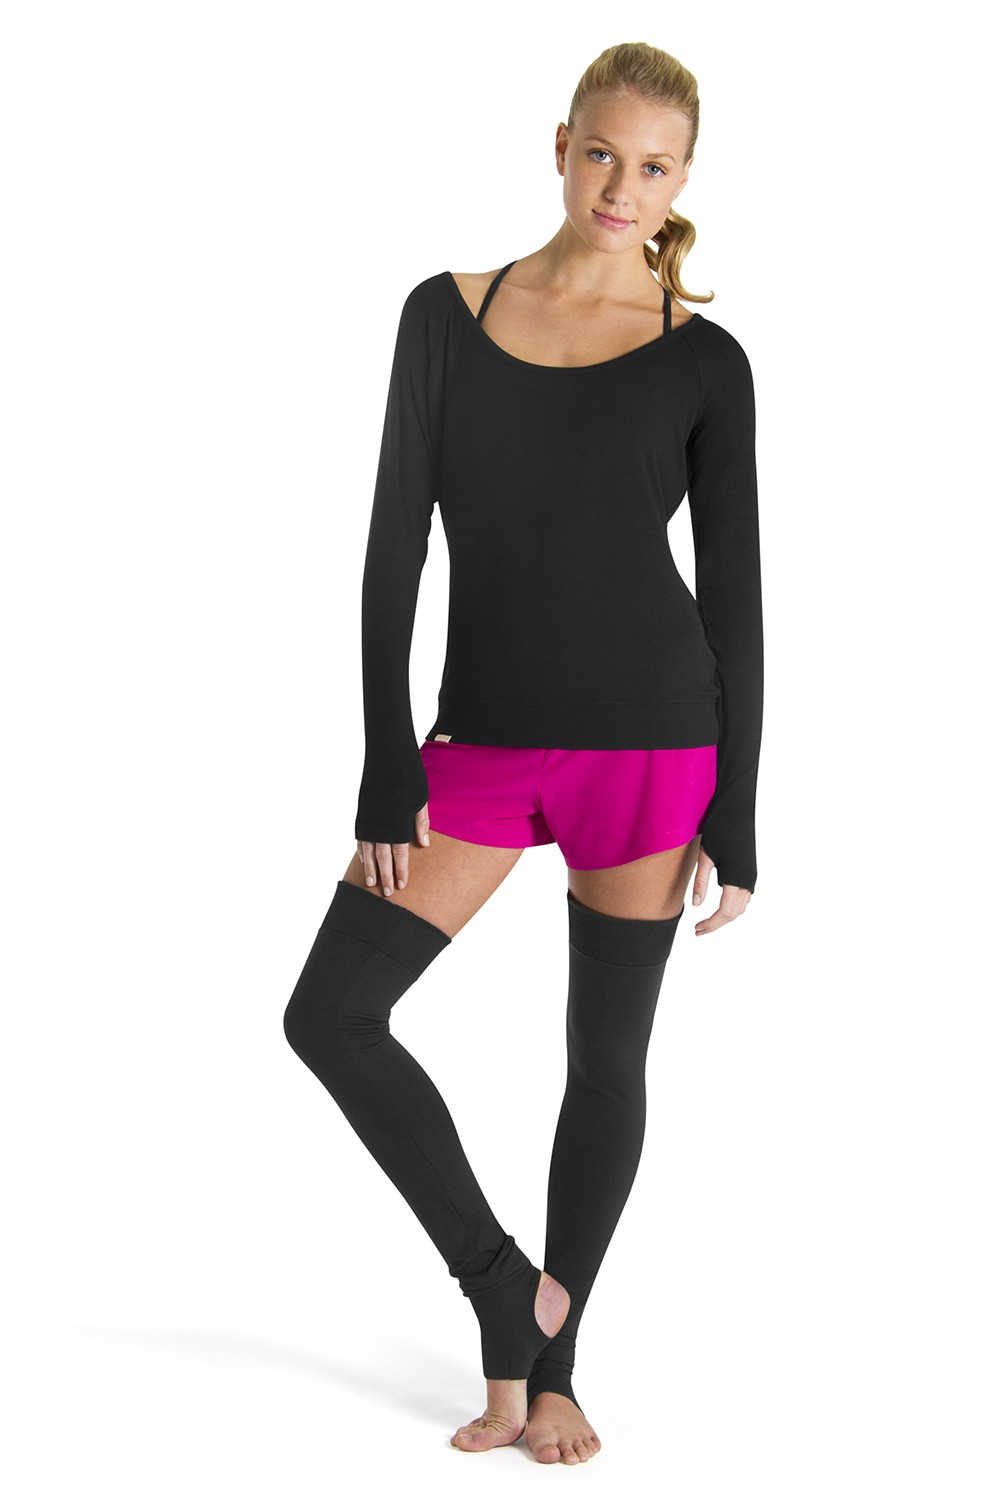 Supplex Leg Warmer Women's Dance Warmups